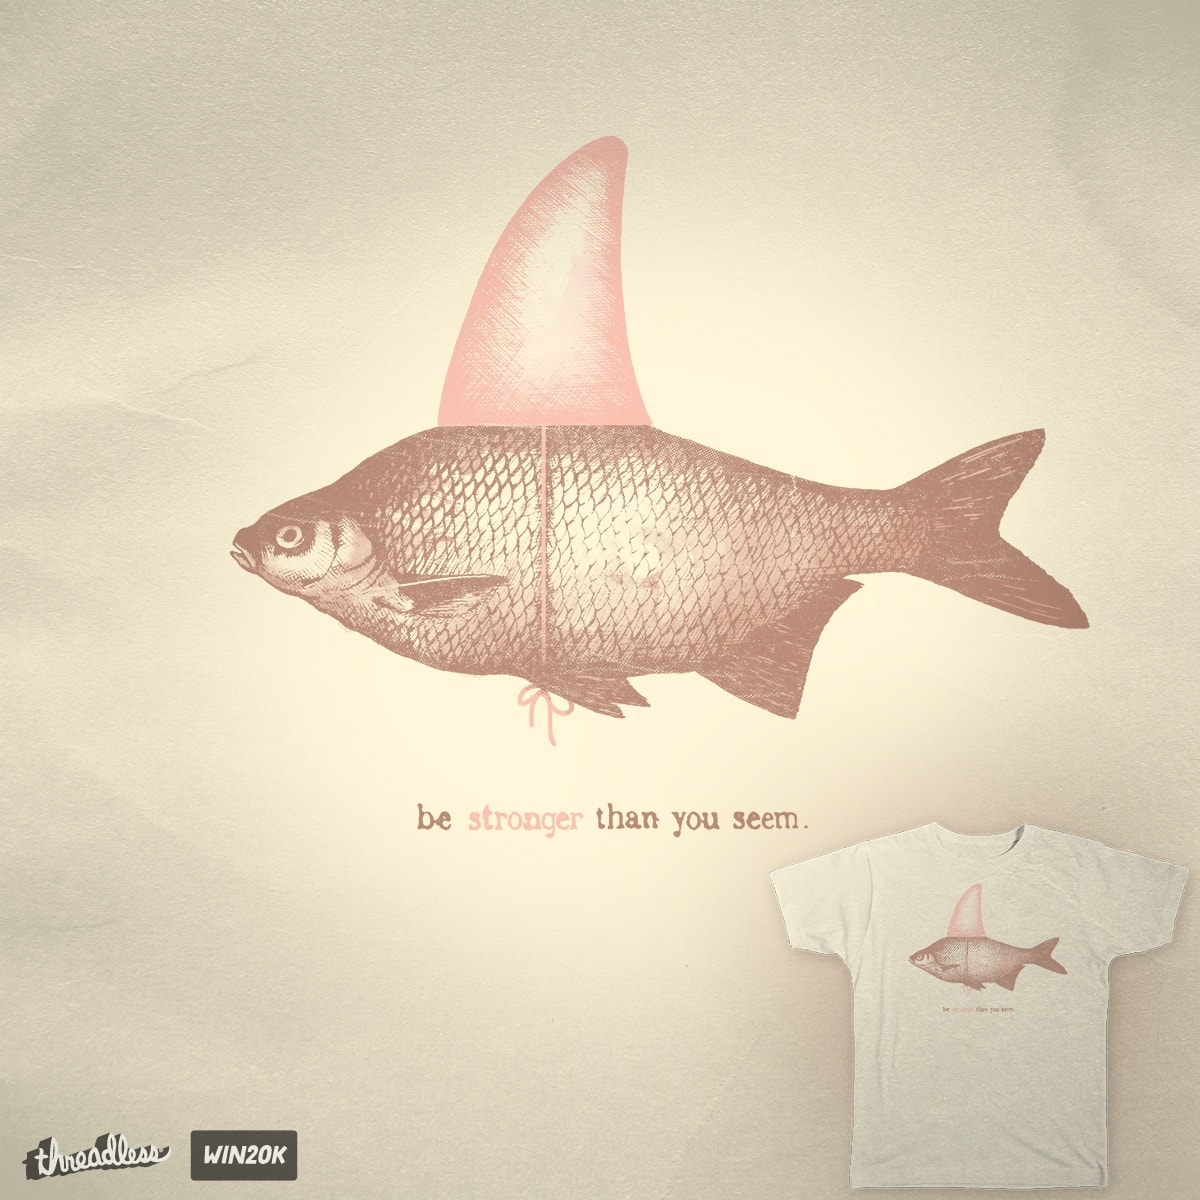 Be stronger than you seem! by Mr.Wayne on Threadless